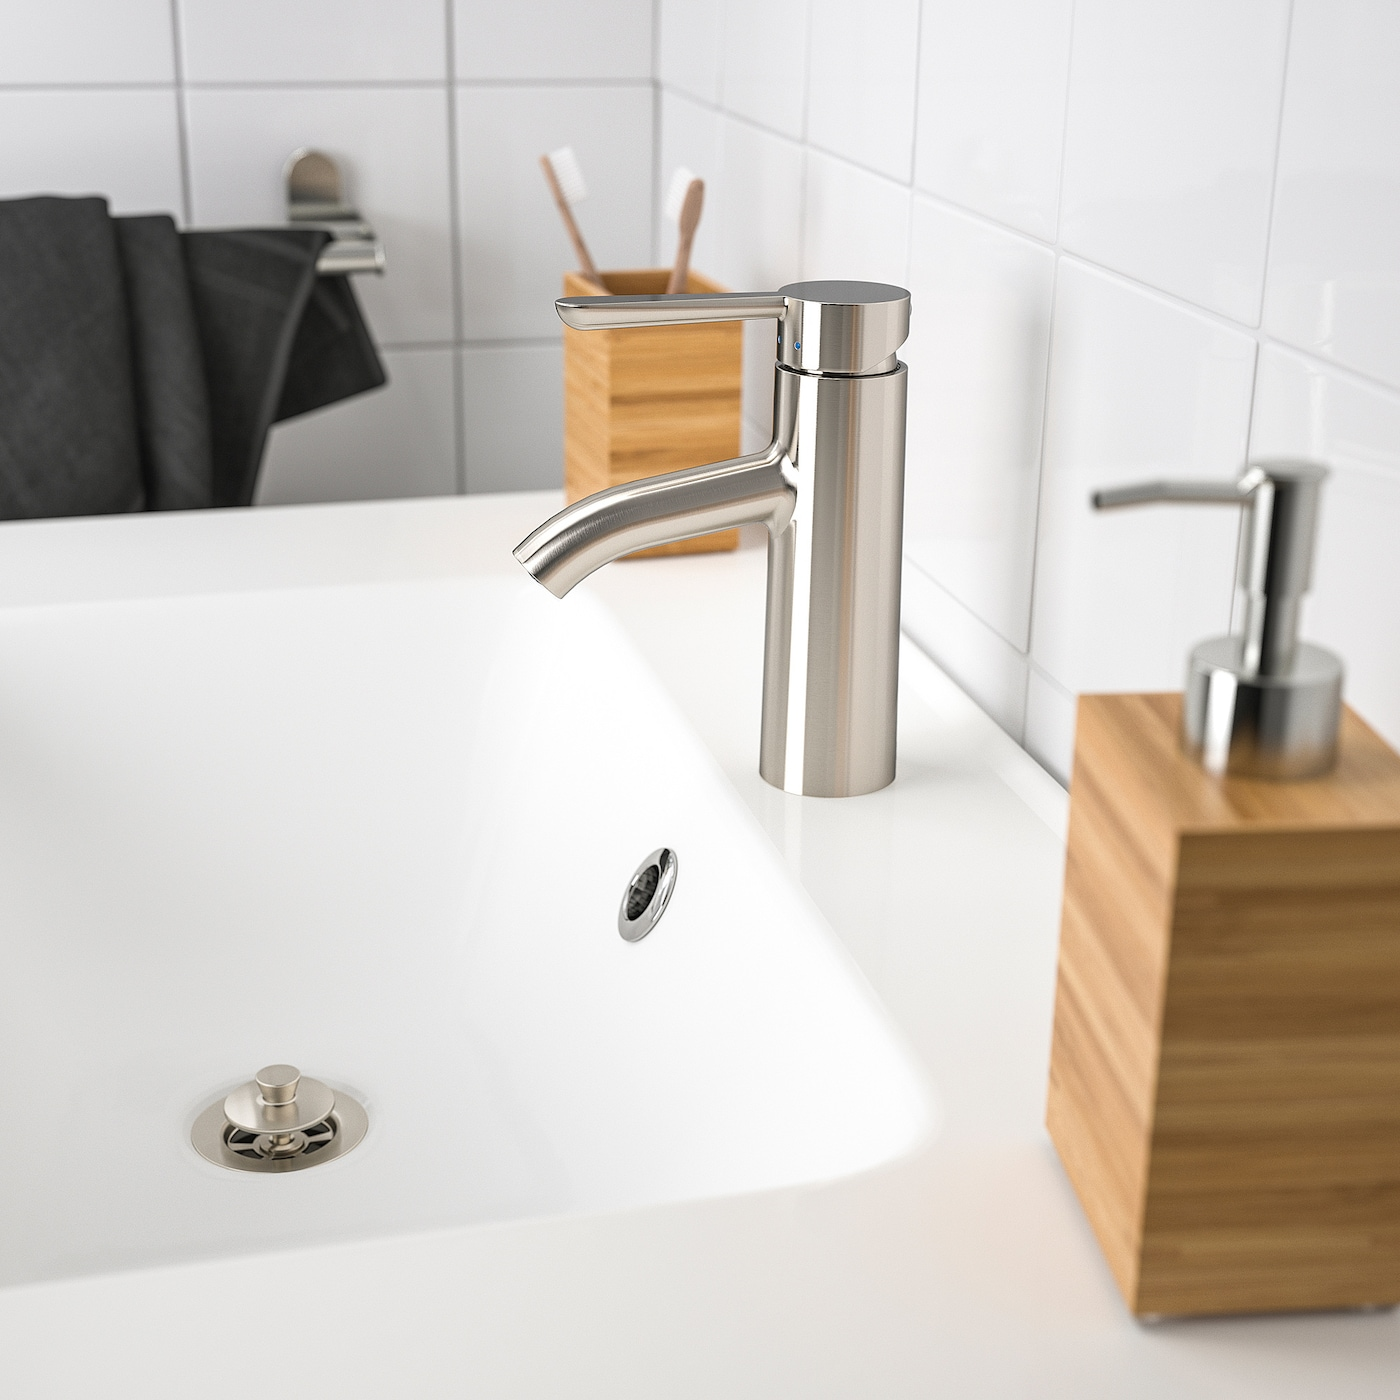 DALSKÄR Wash-basin mixer tap with strainer, stainless steel colour